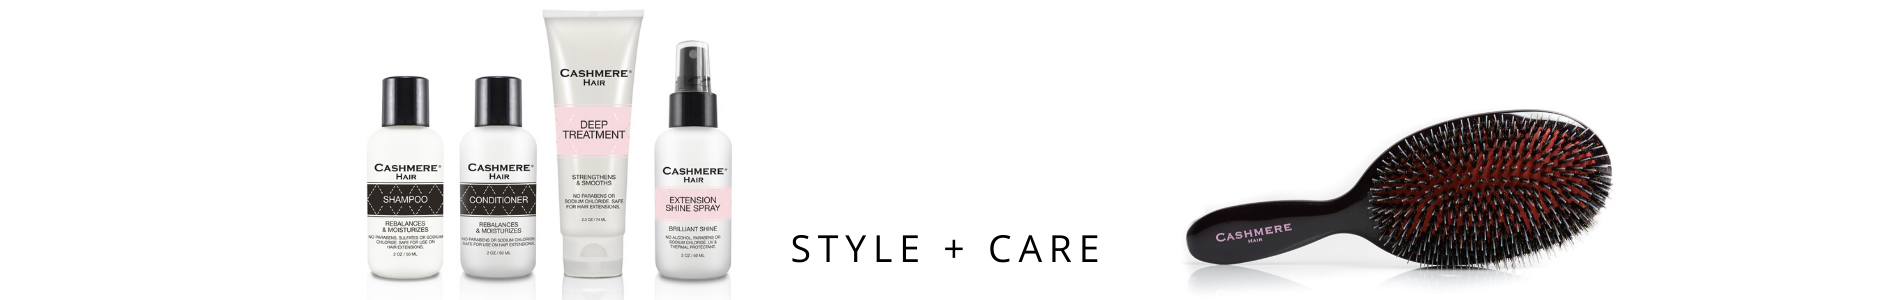 6-style-care-store-banner.png